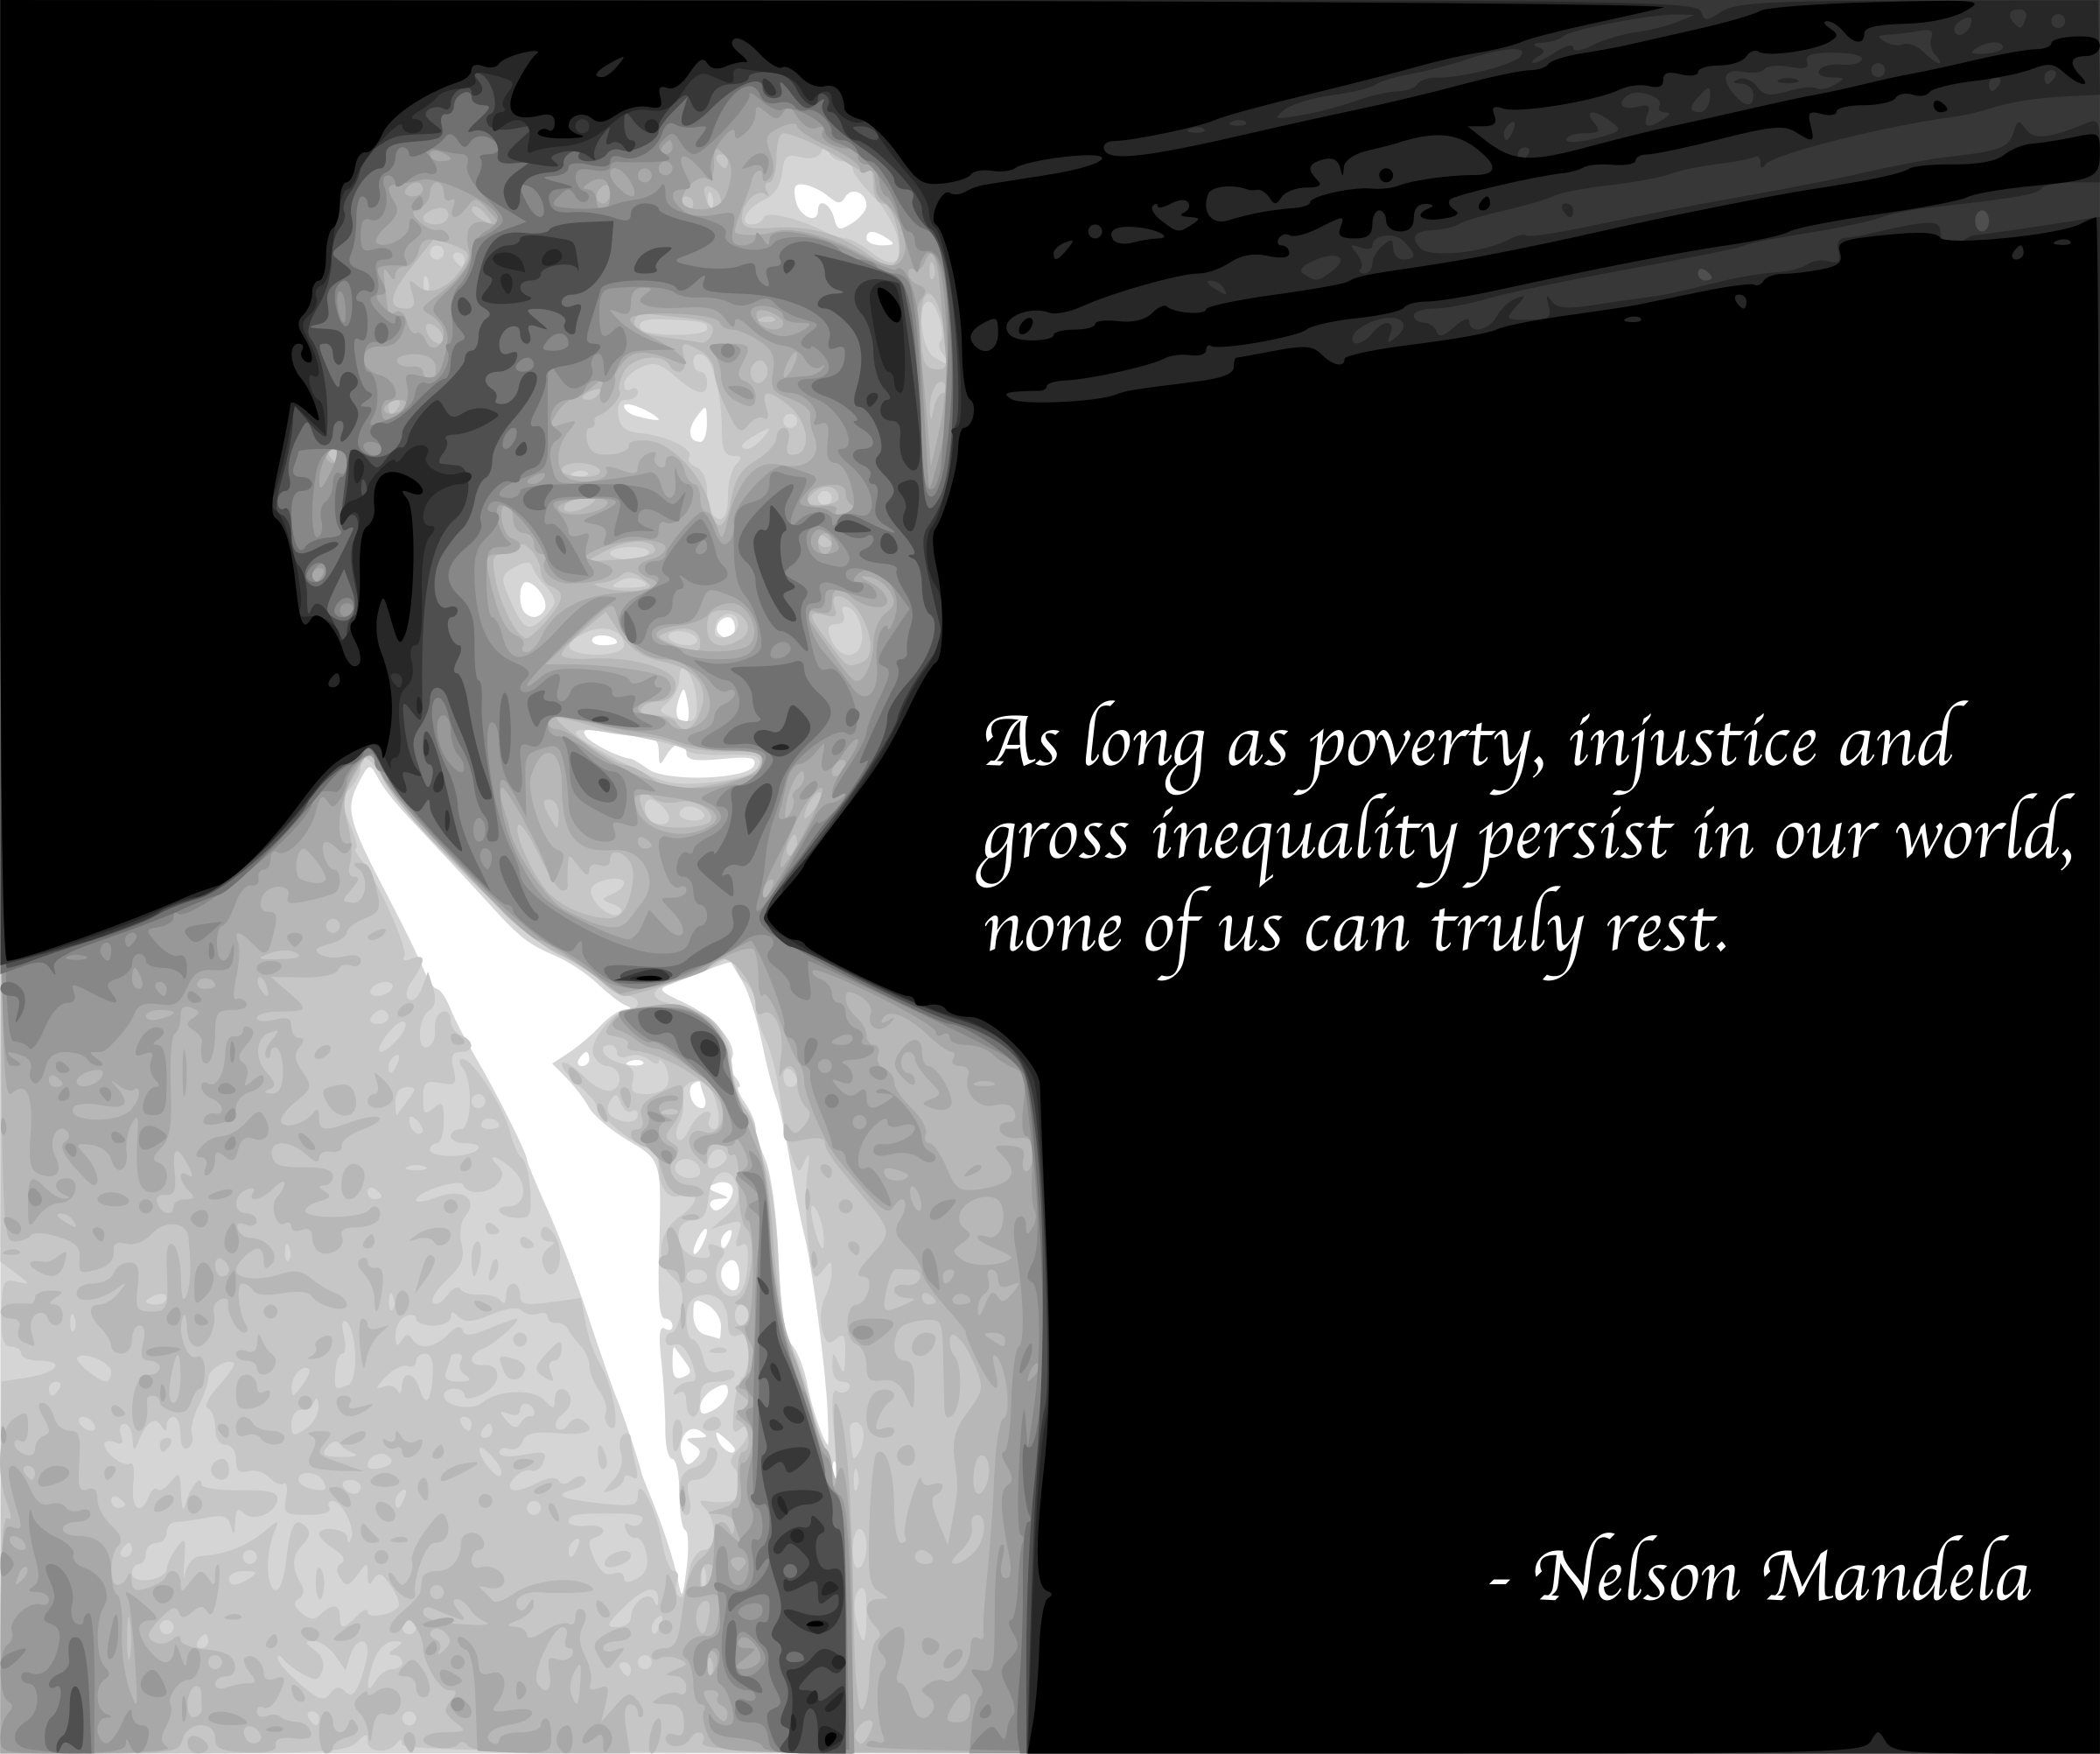 Nelson Mandela Quote by j4p4n